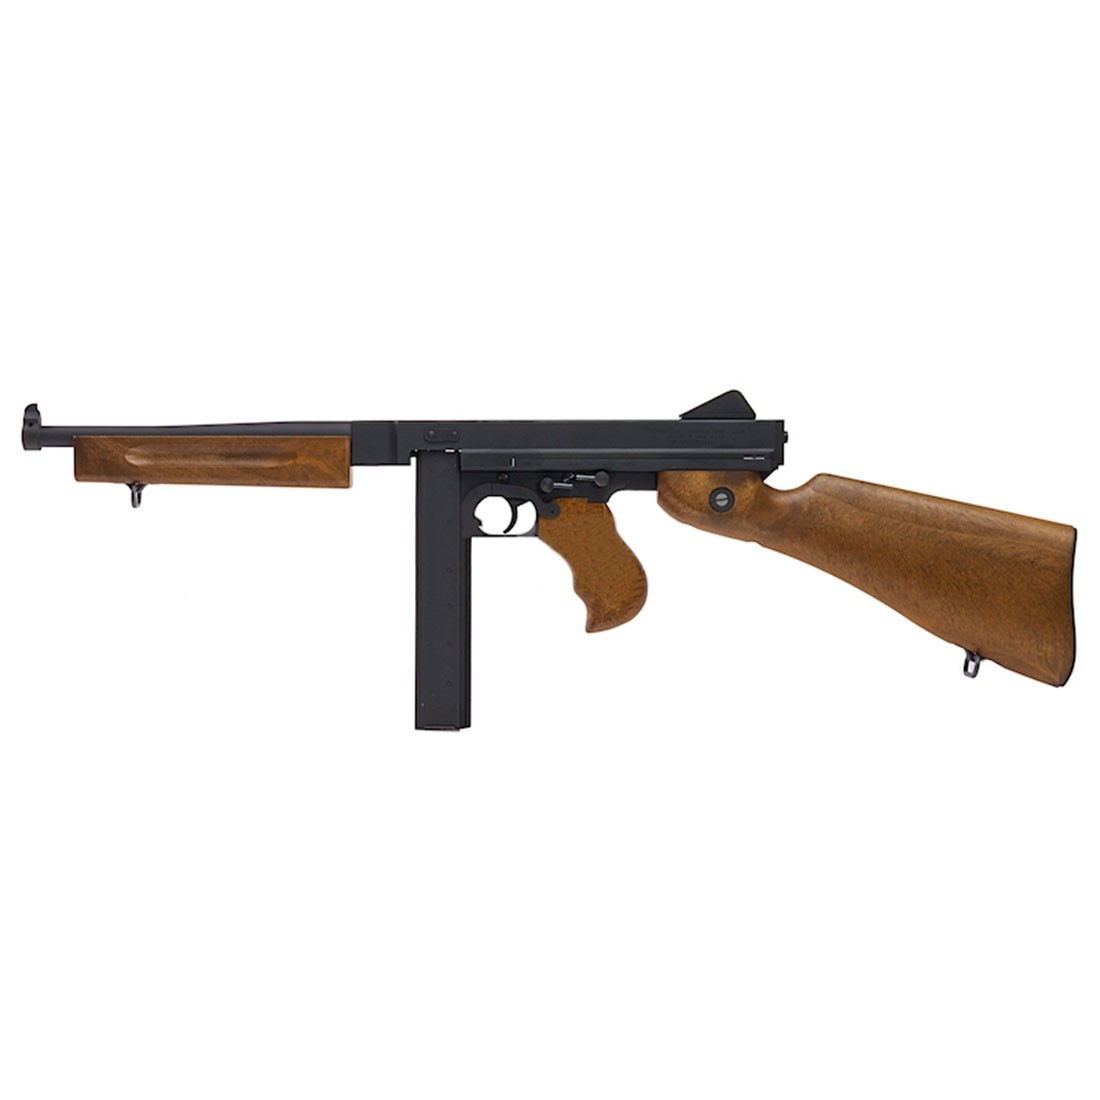 Cybergun Thompson M1A1 Gas Blowback Submachinegun